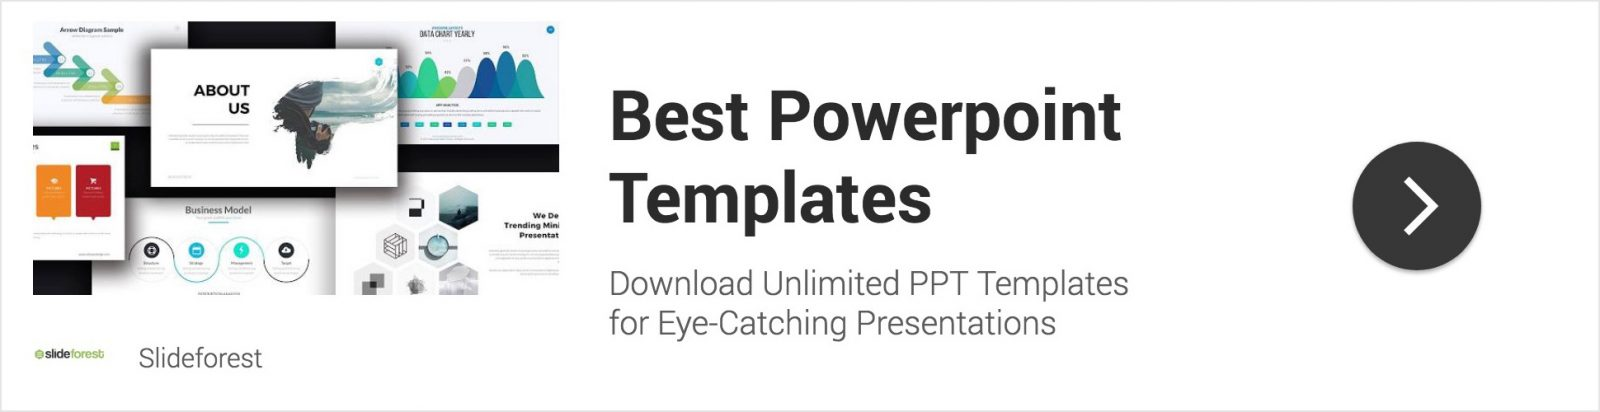 95 Free Powerpoint Templates Best Ppt Presentation Themes